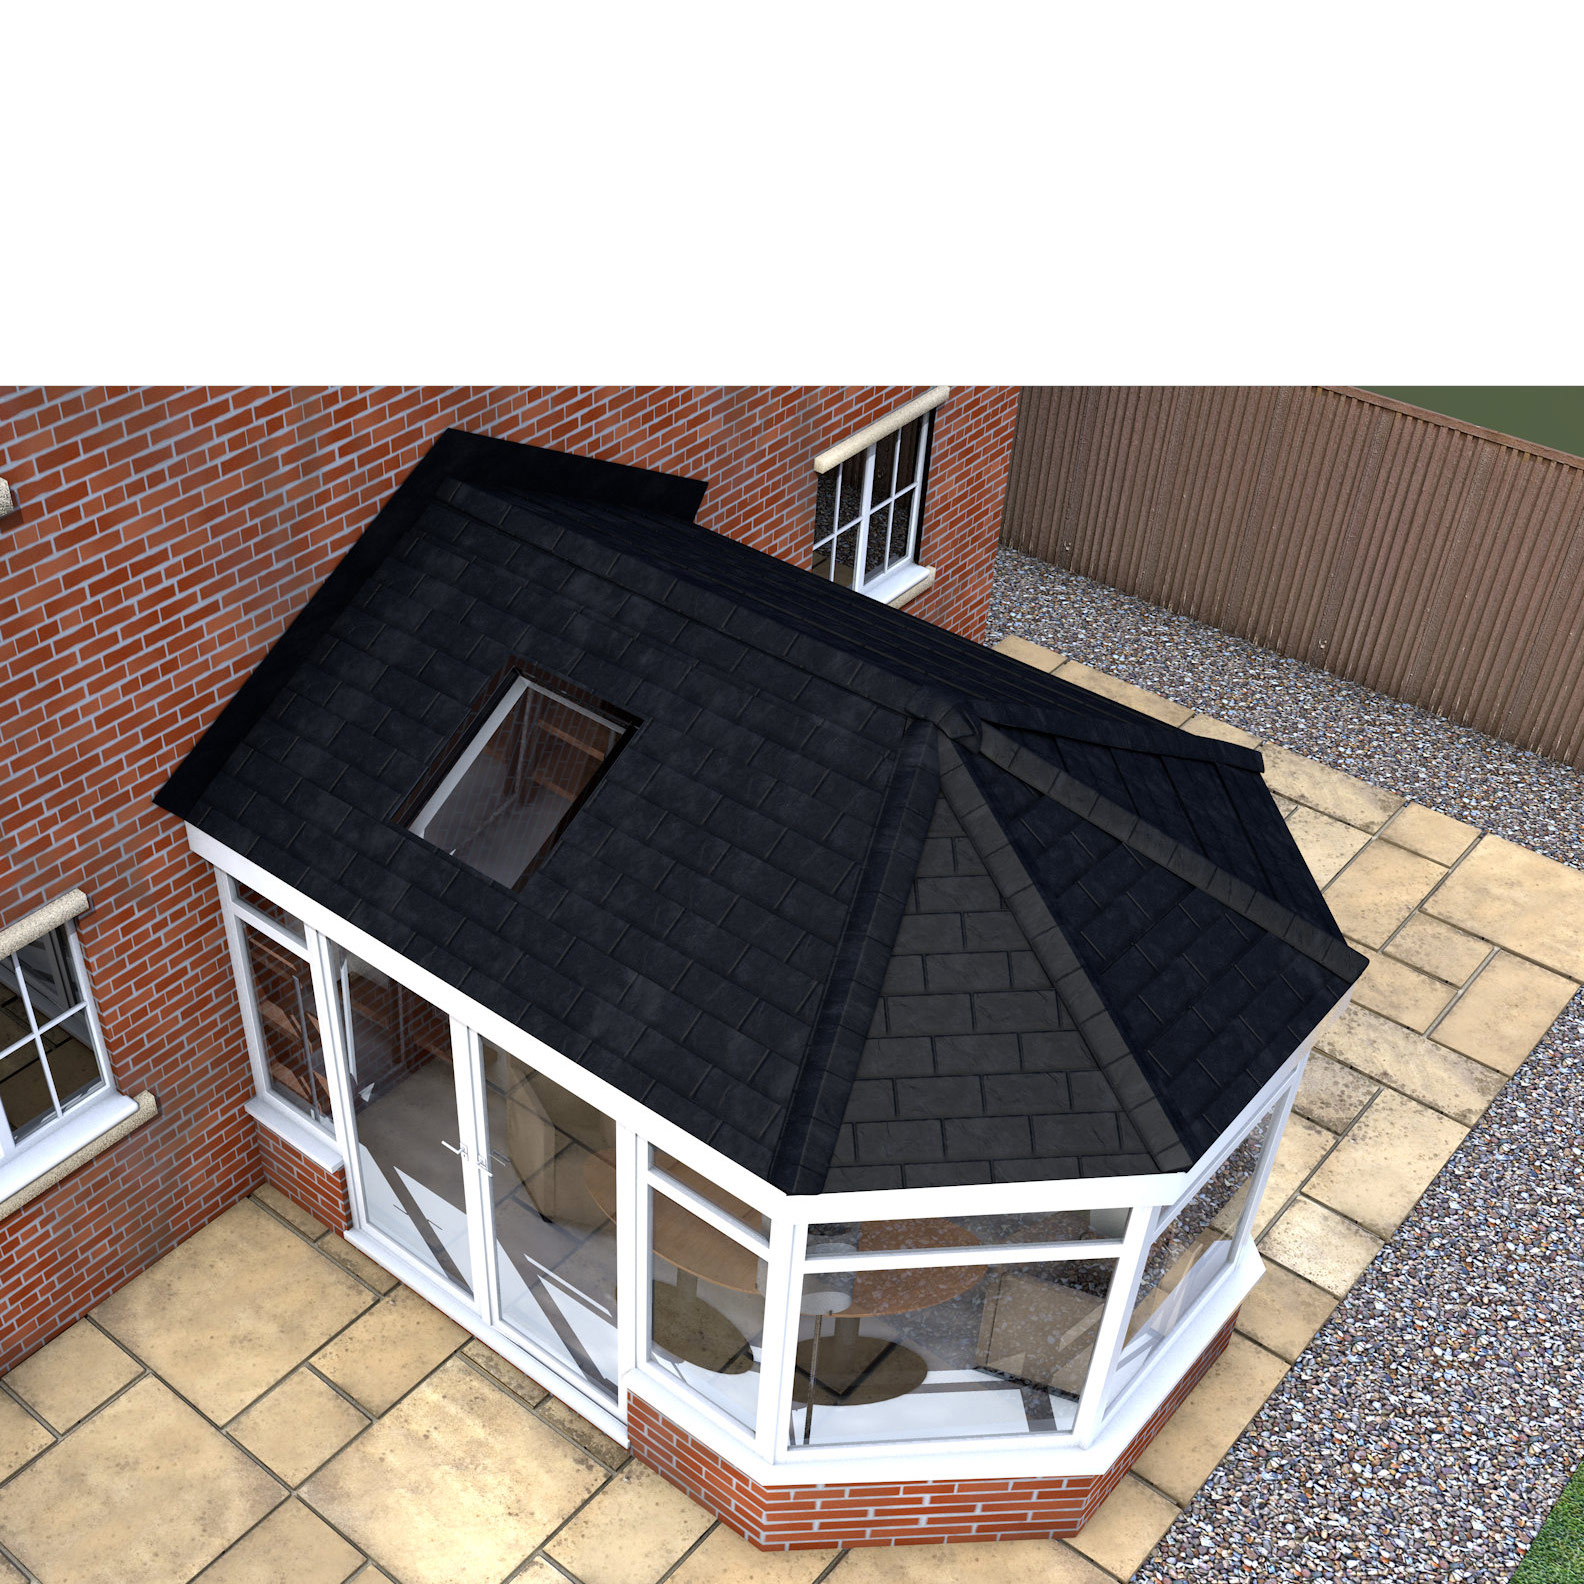 Leka Roofing Systems